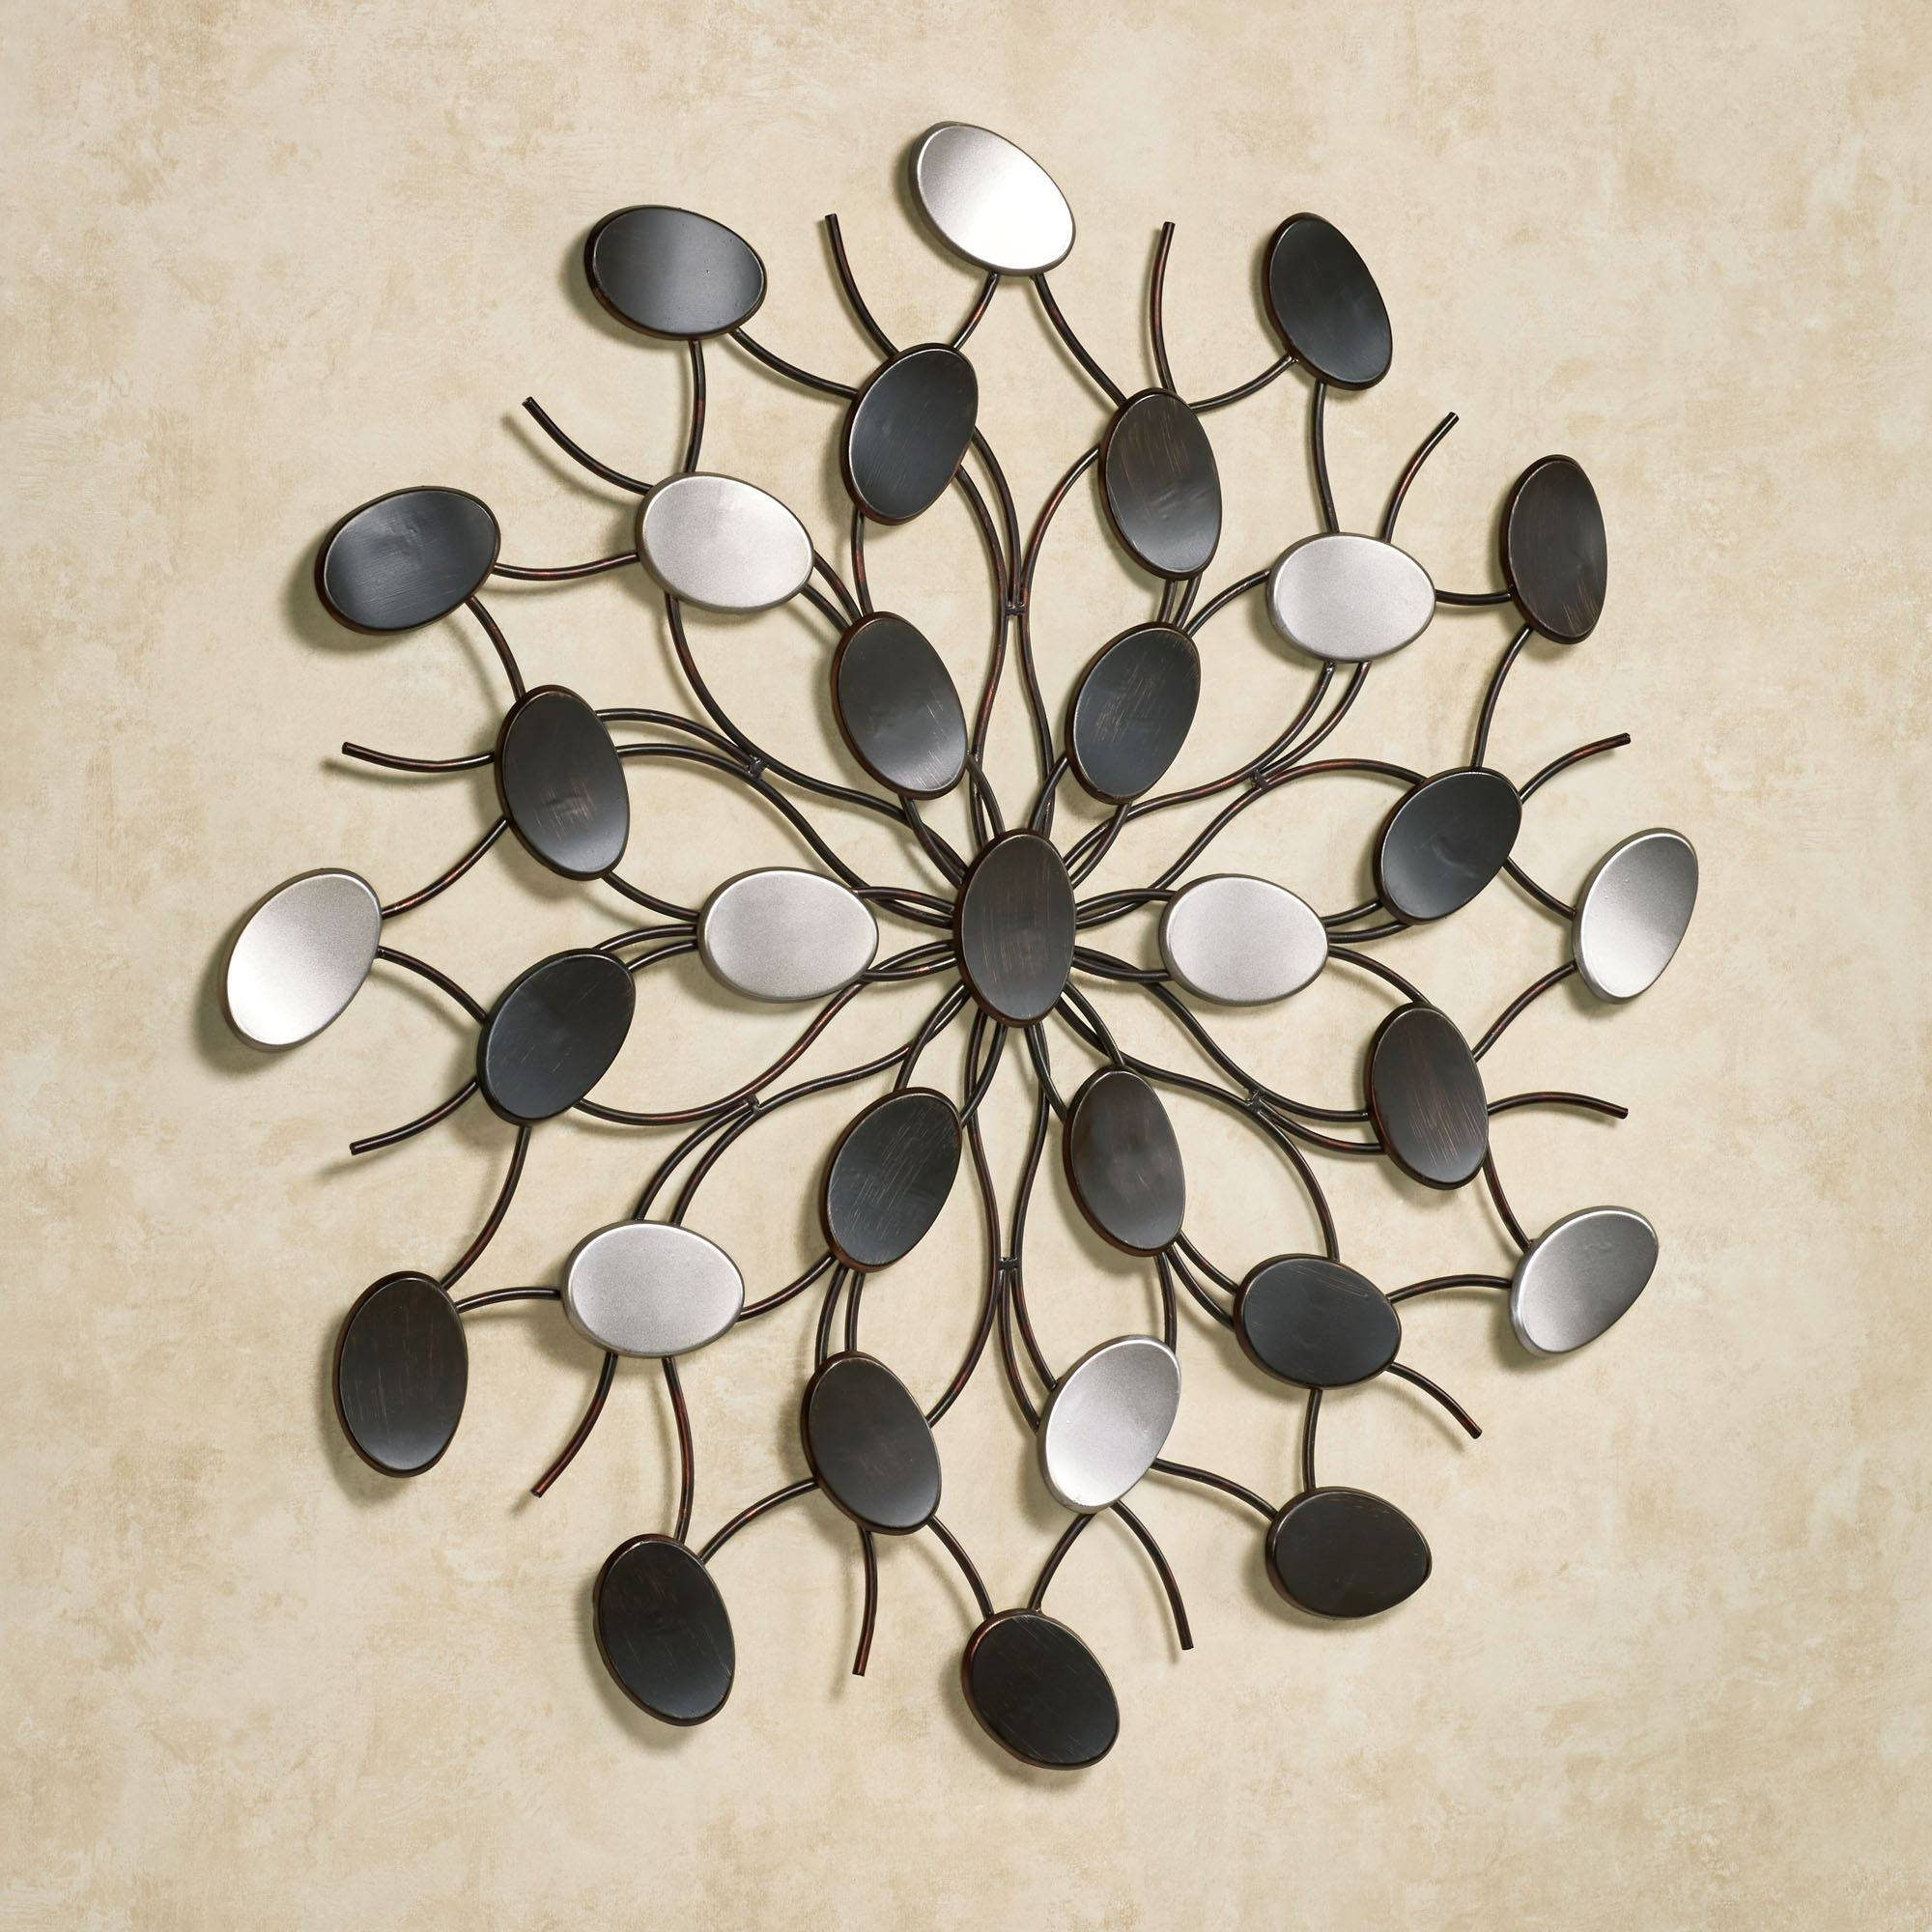 Radiant Petals Abstract Metal Wall Art Regarding Newest Metallic Wall Art (Gallery 3 of 25)